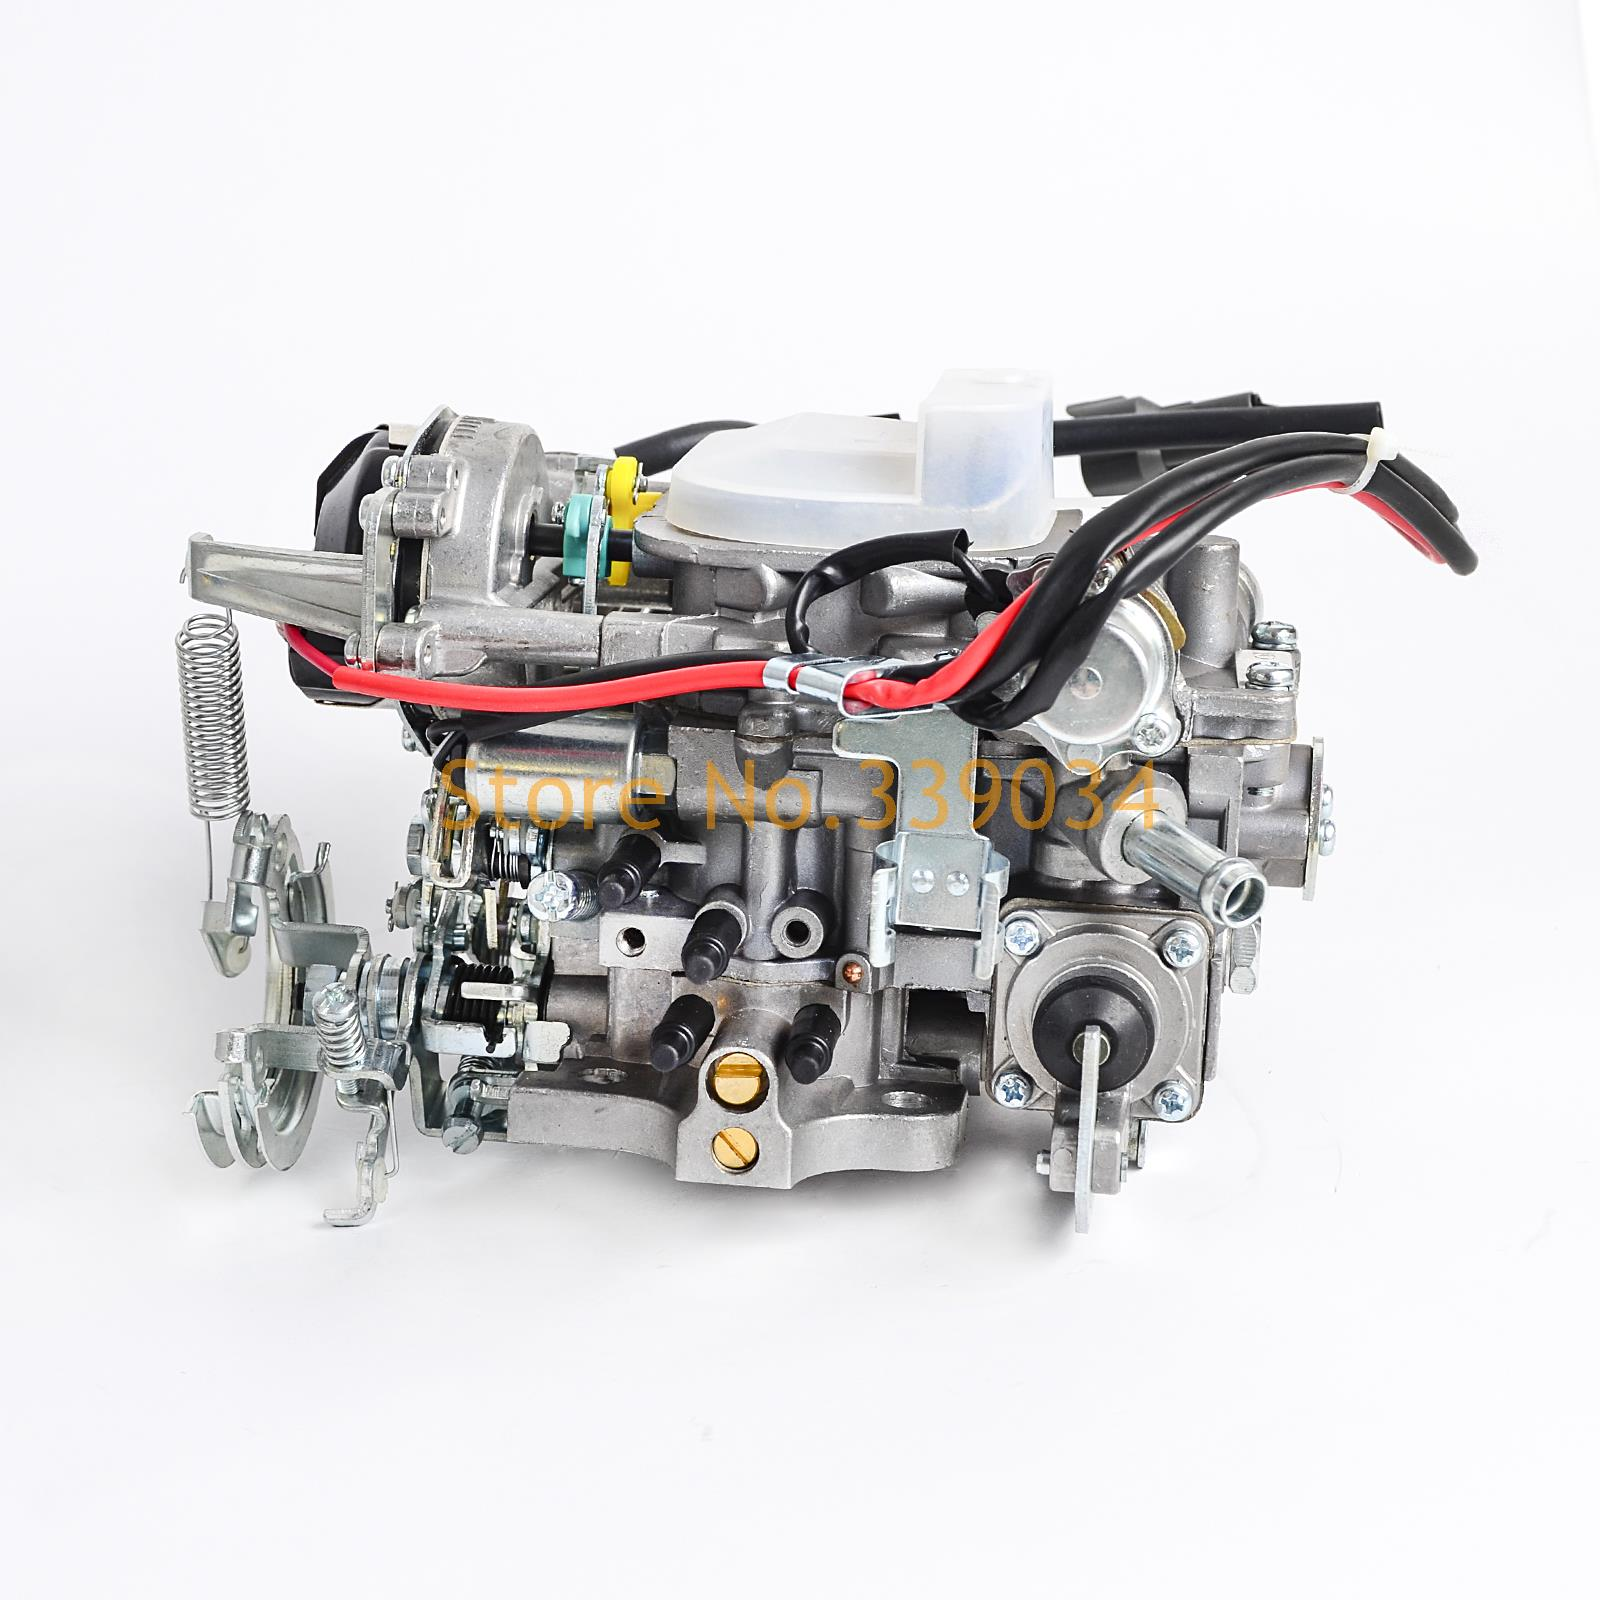 New High Quality CARBIE CARB Carby Carburetor for TOYOTA 4 RUNNER HILUX 21R 22R 21100-35530 21100-35520